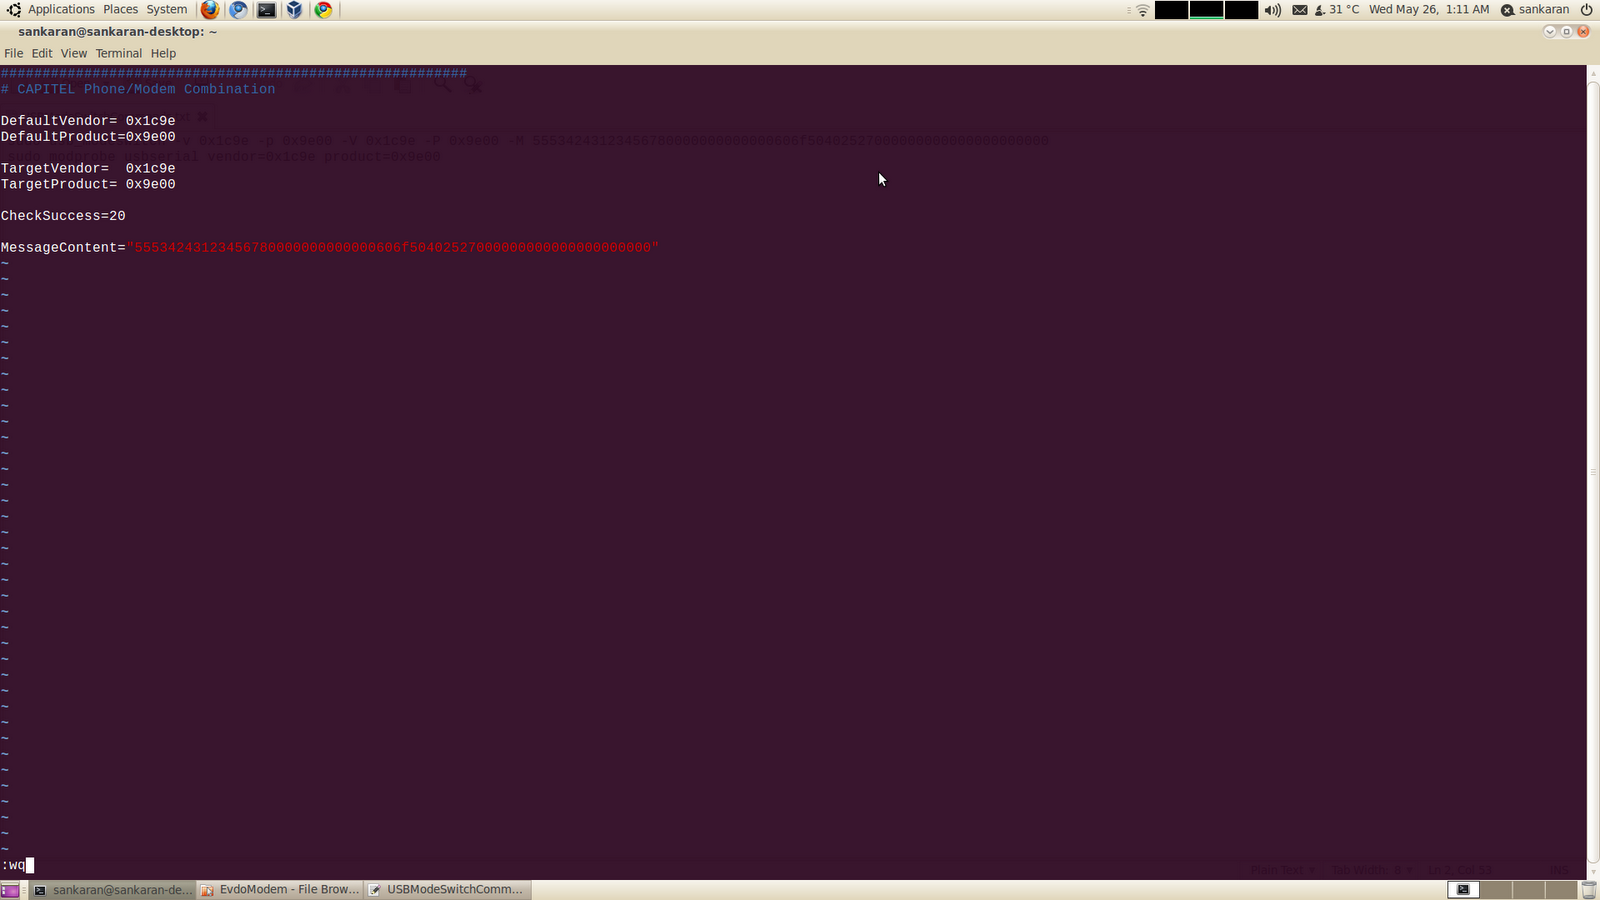 My experiments with Linux: Configuring BSNL EVDO CAPITEL 3G USB